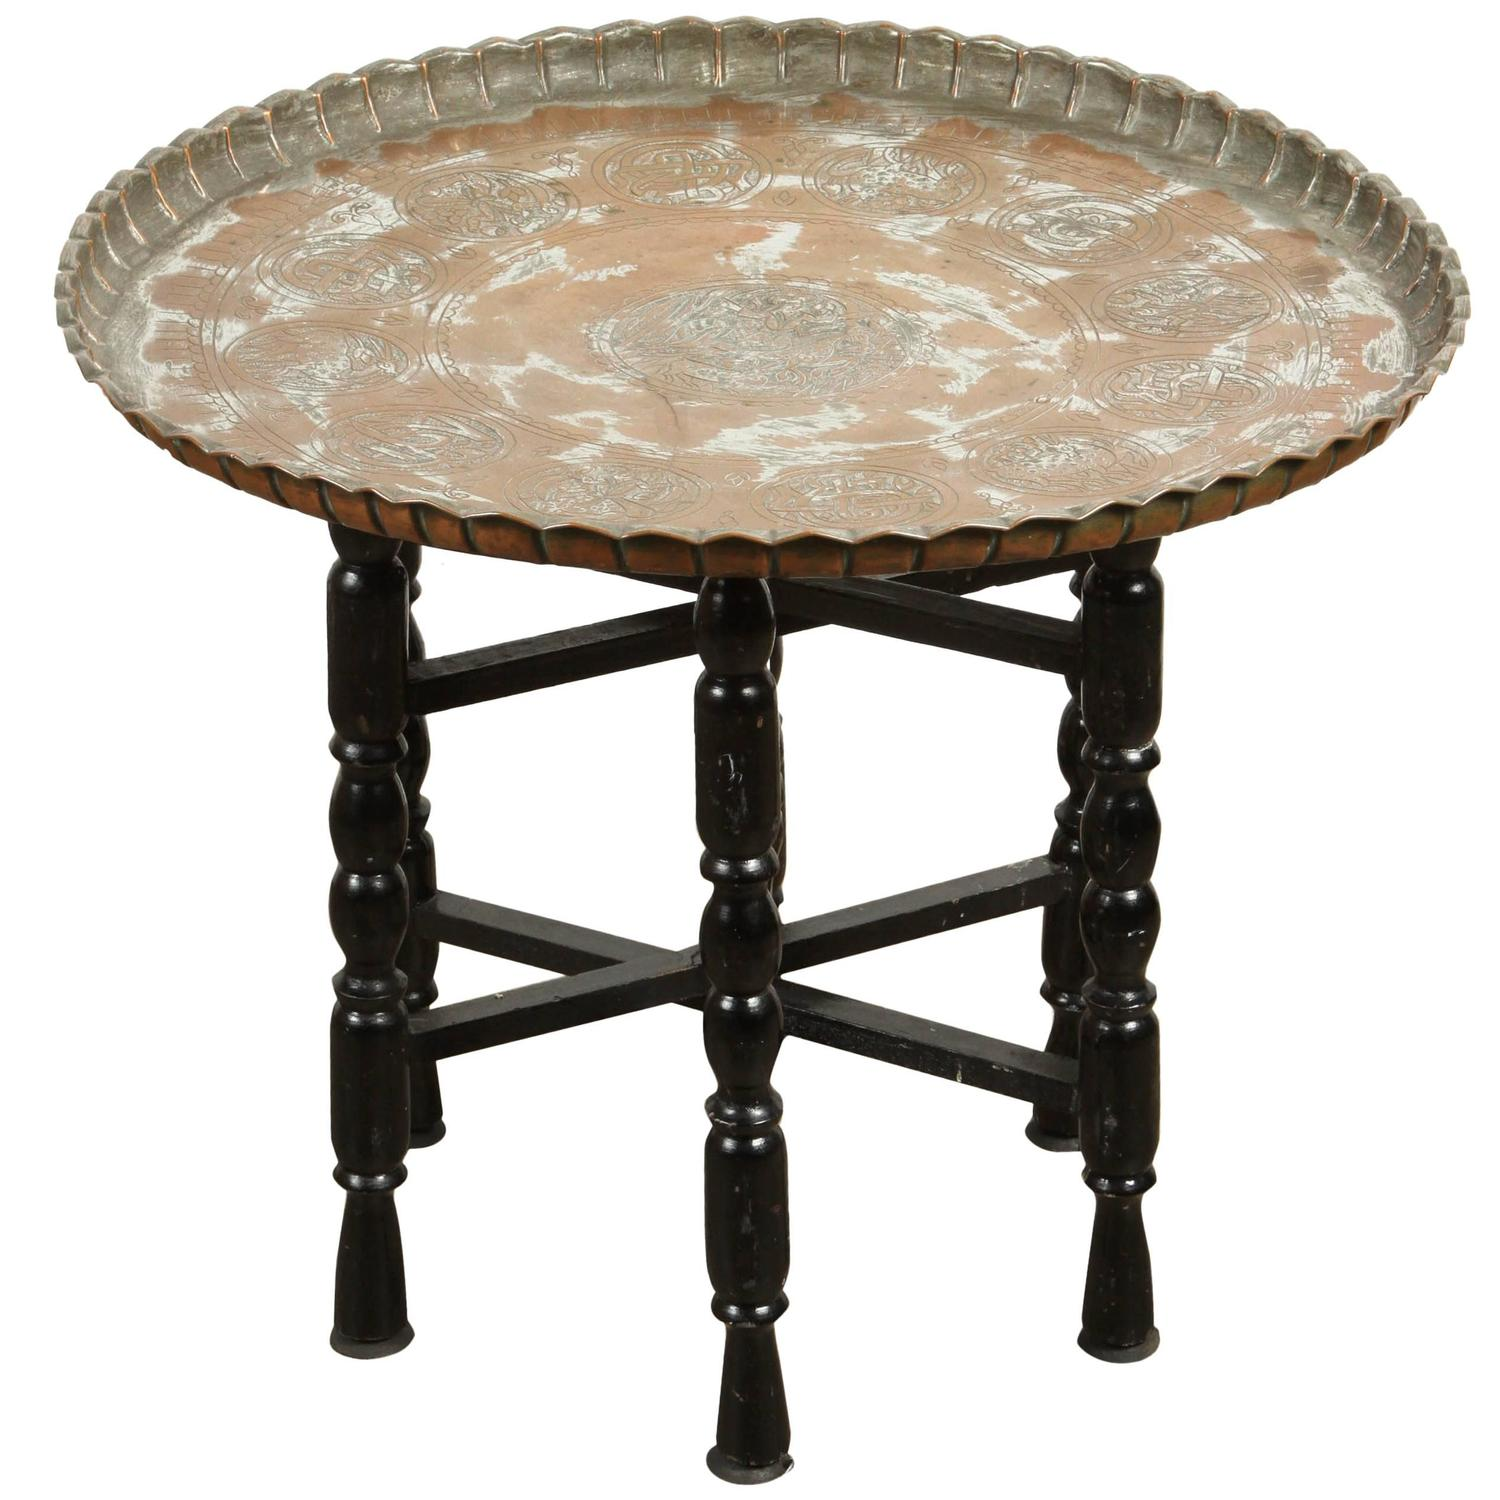 Vintage Middle Eastern Etched Round Copper Tray Table at 1stdibs